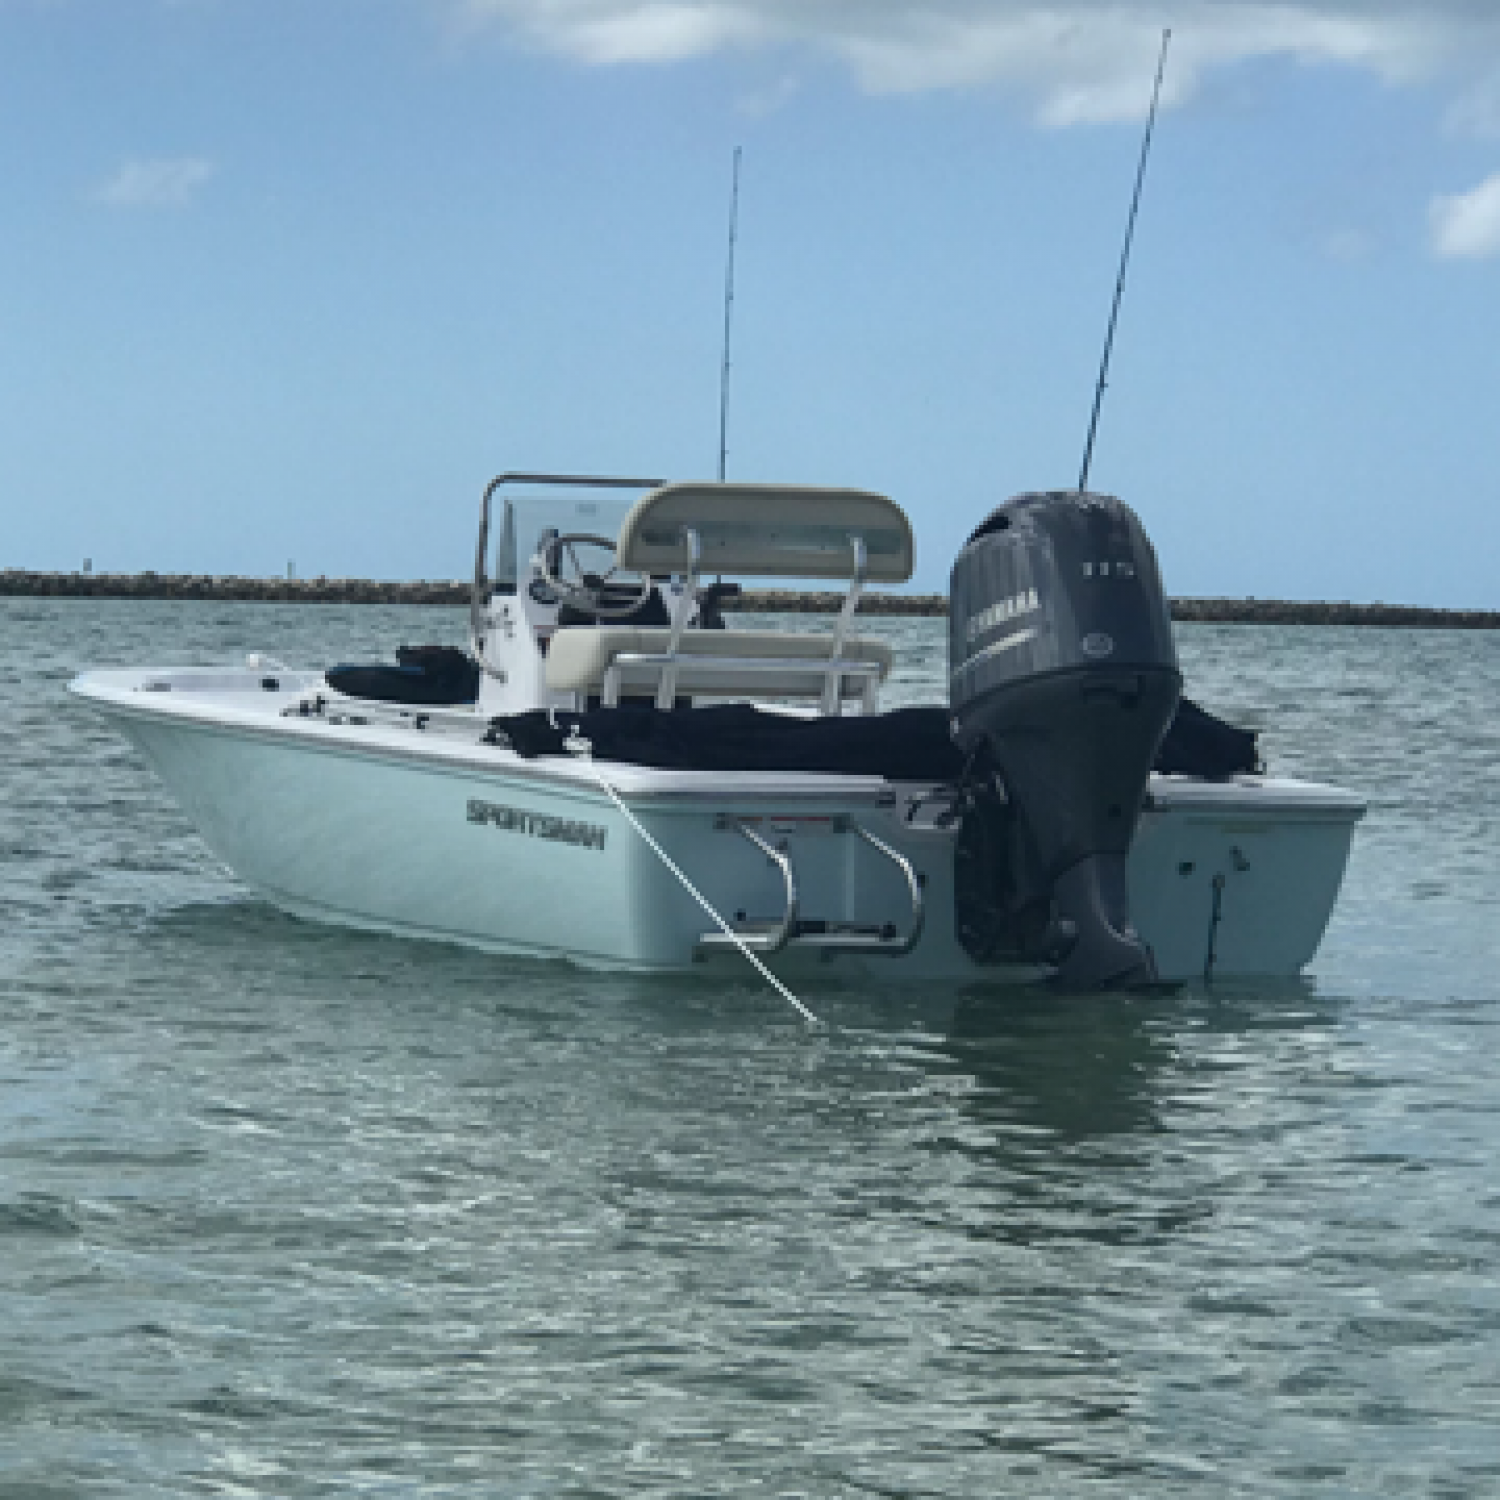 Title: The 20 Island Bay's 1st Day on the water! - On board their Sportsman Island Bay 20 Bay Boat - Location: Clearwater, FL. Participating in the Photo Contest #SportsmanMarch2018